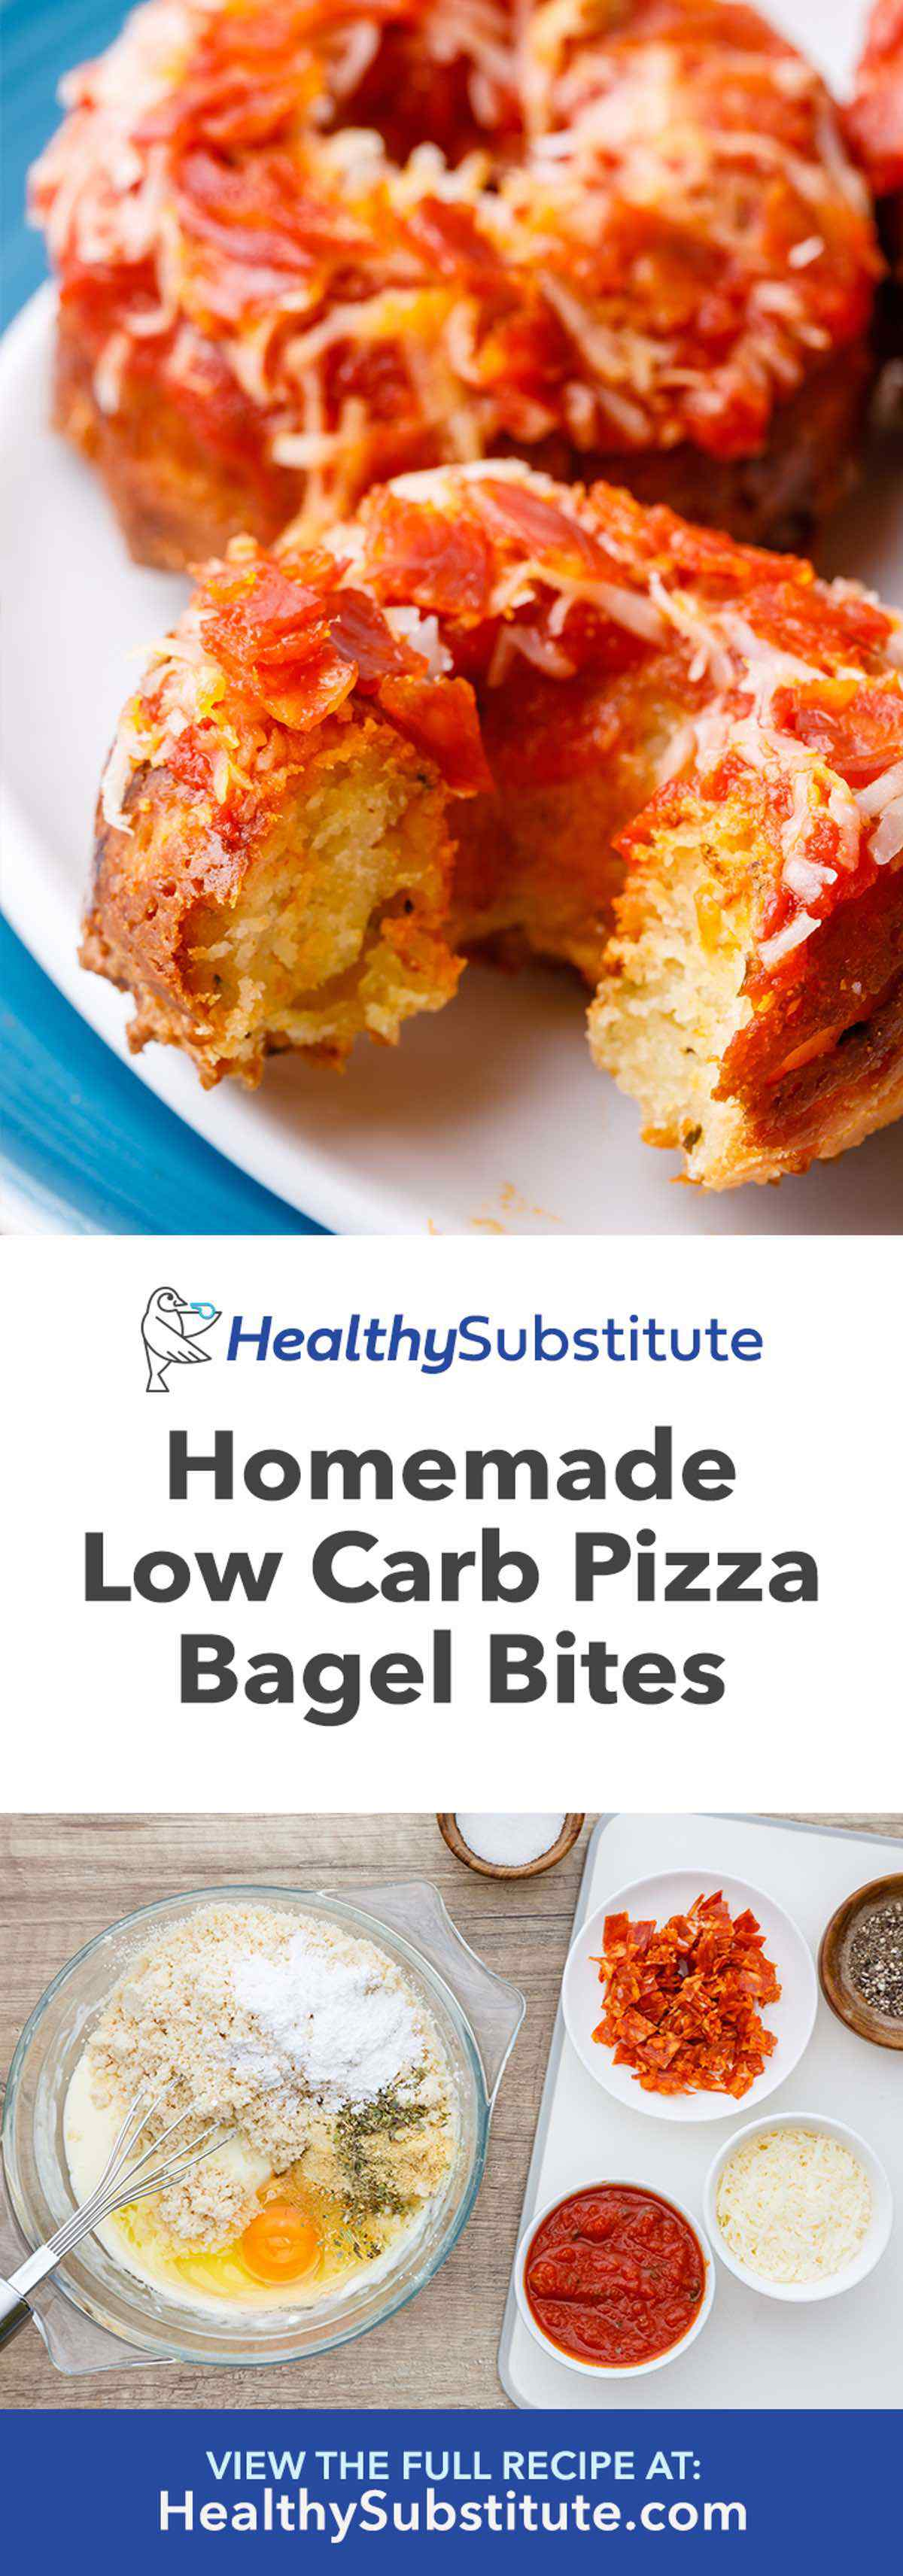 Homemade Low Carb Pizza Bagel Bites